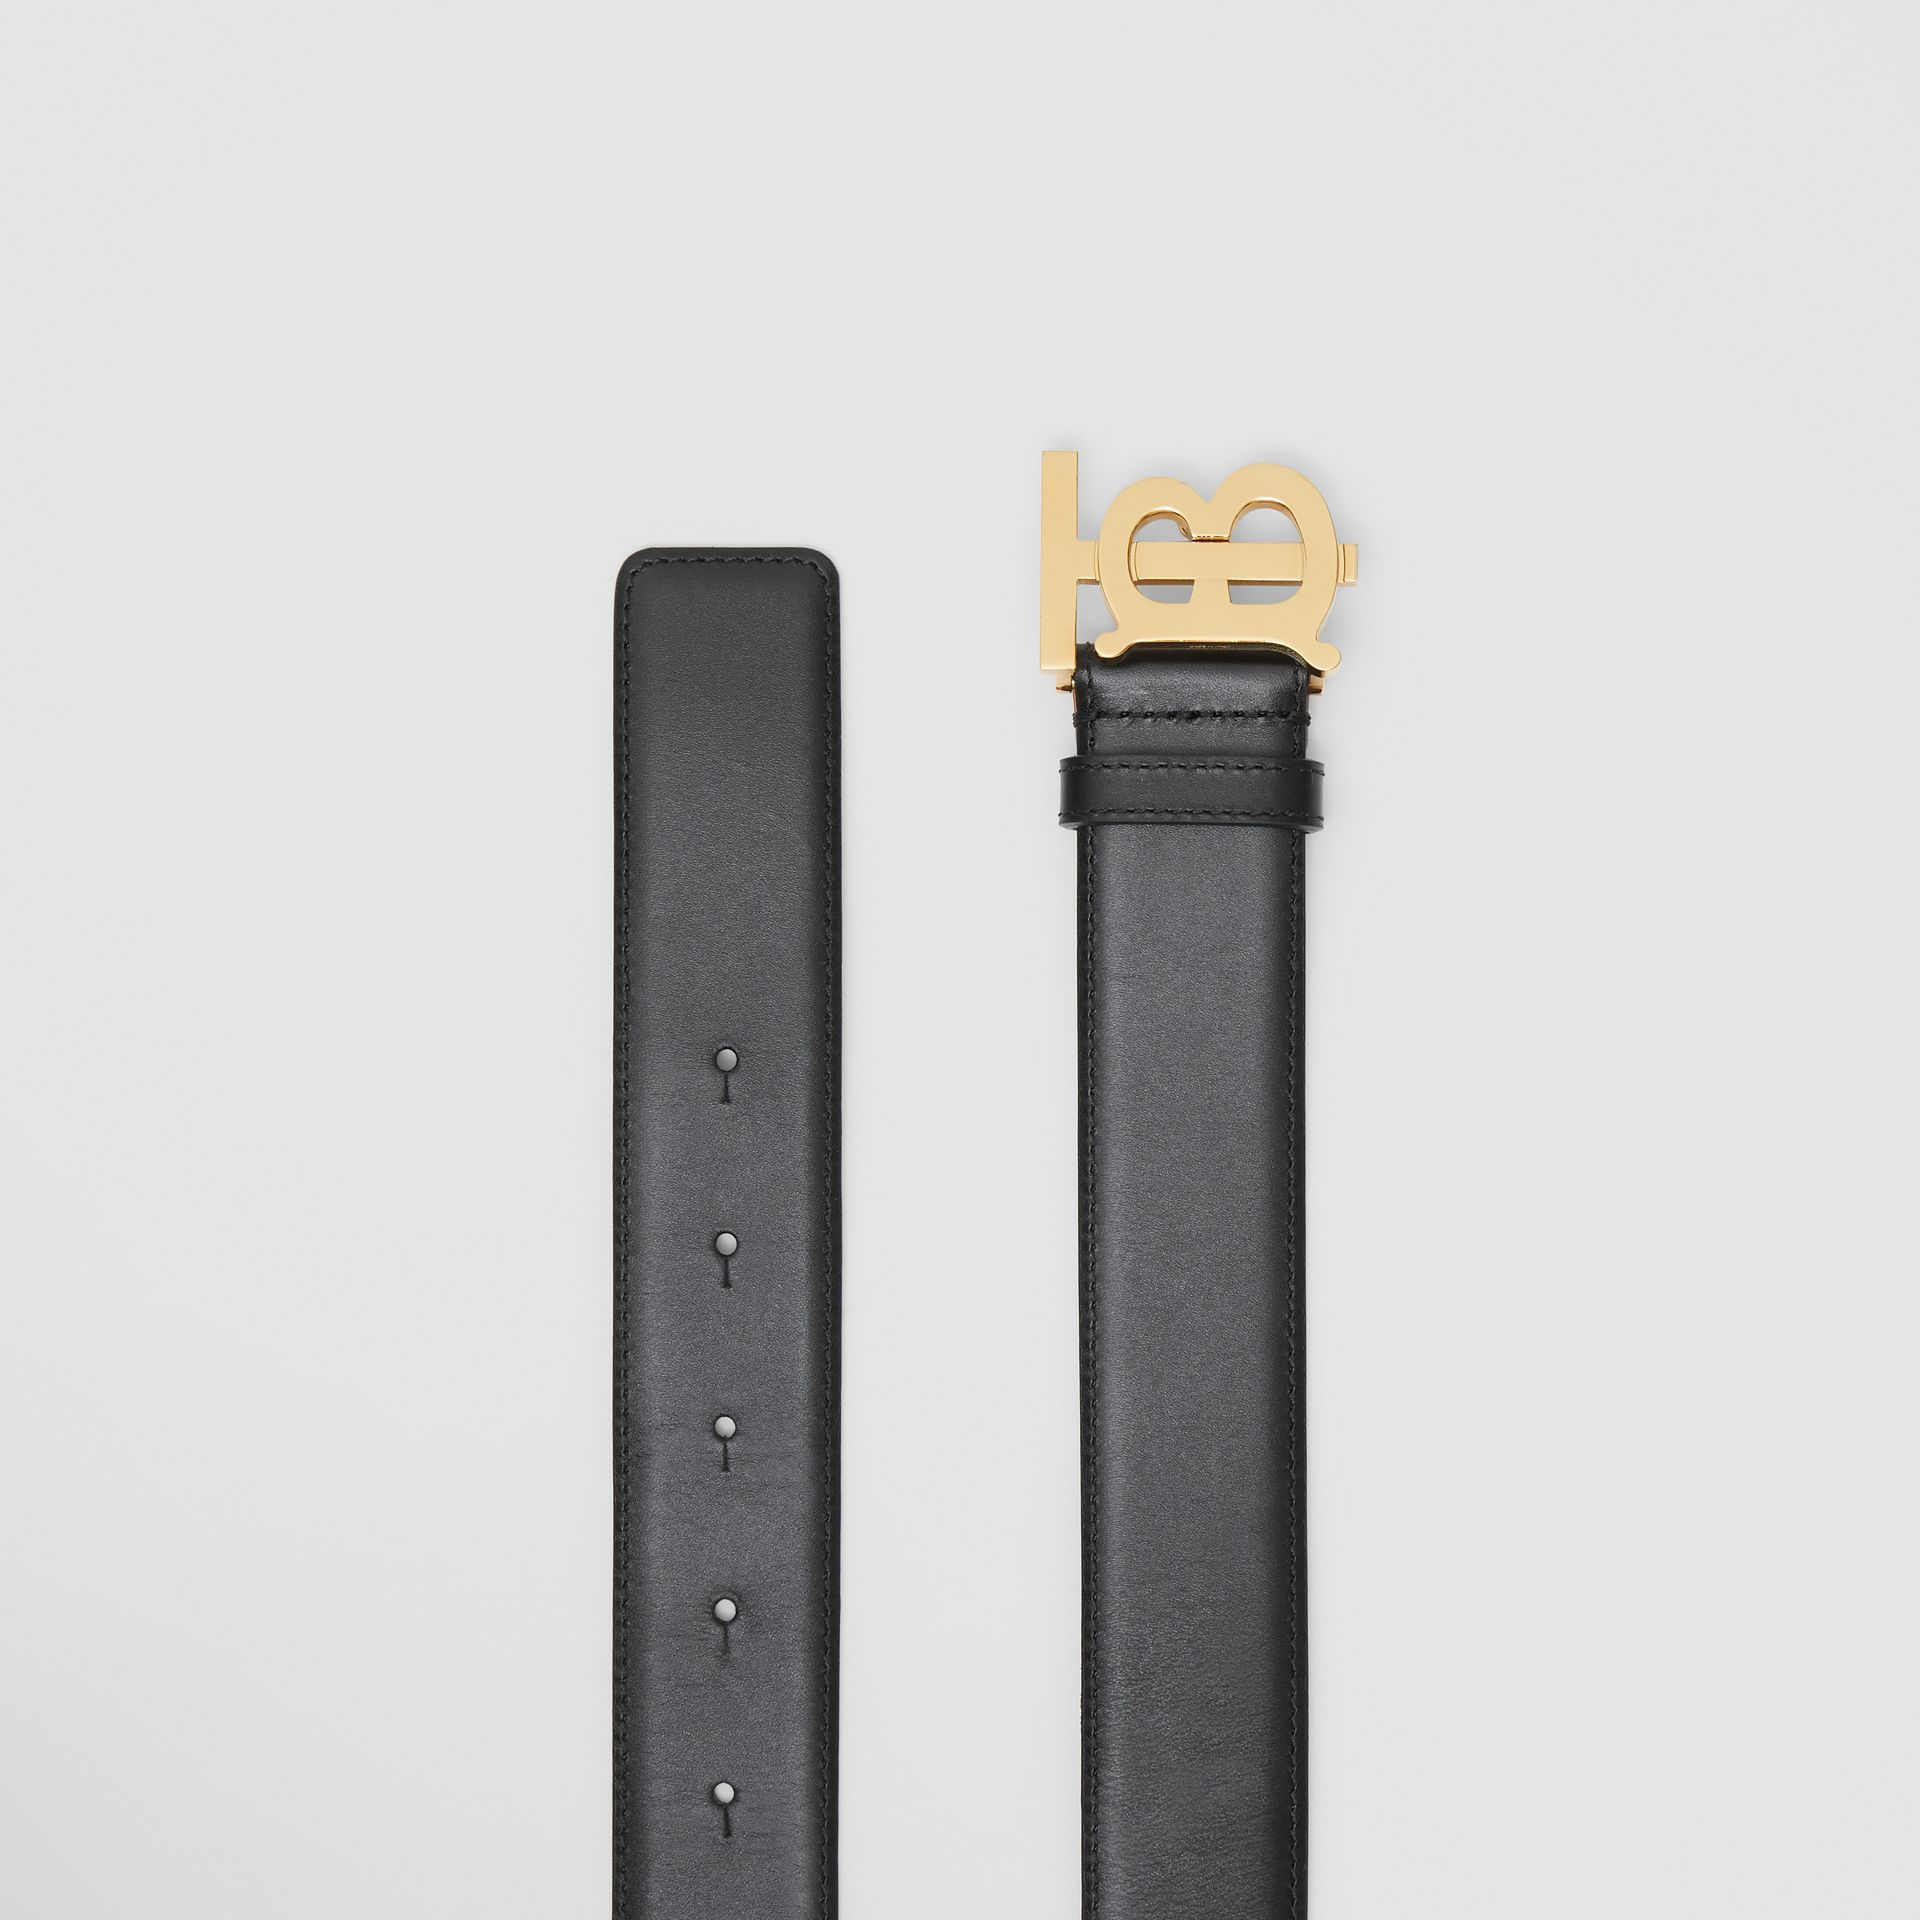 Monogram Motif Leather Belt in Black - Women | Burberry - gallery image 5